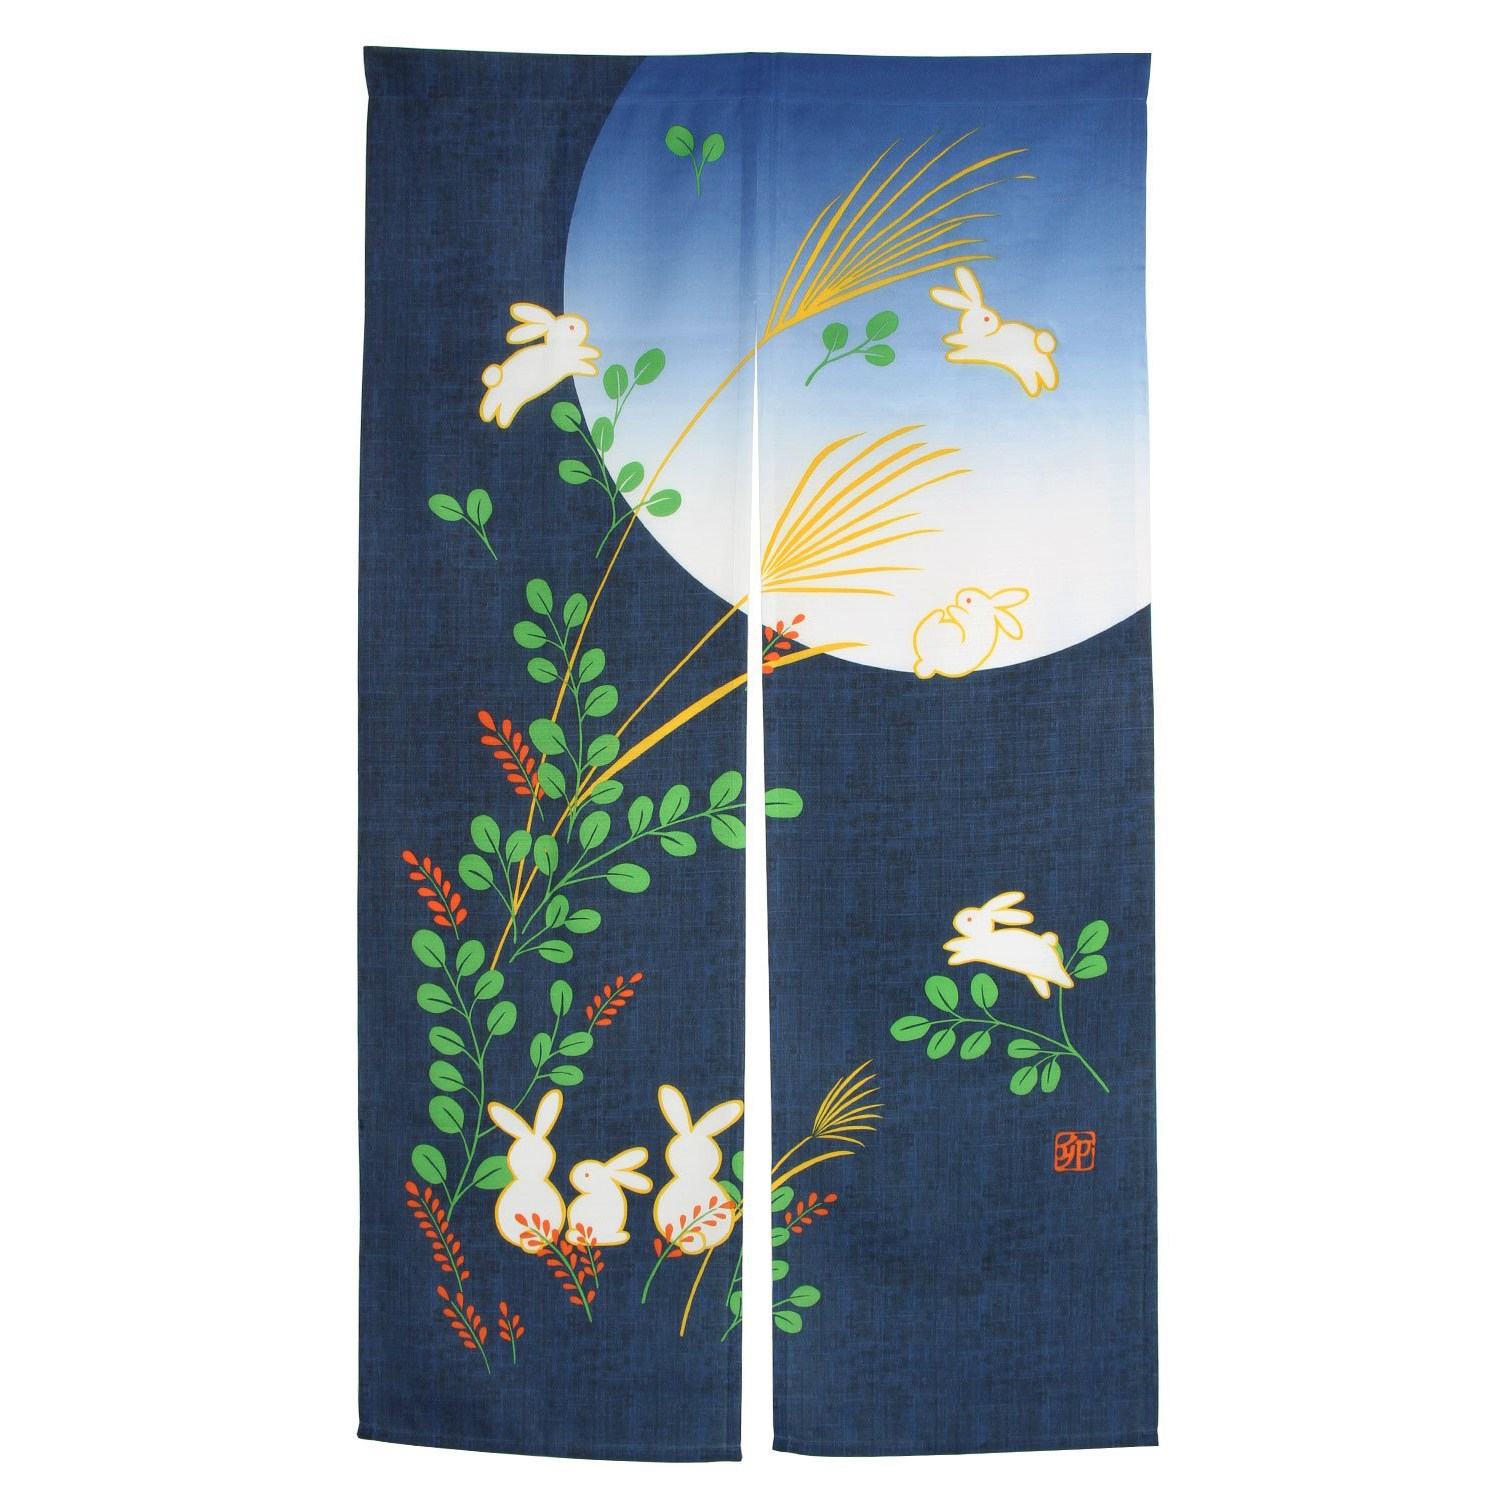 Japanese Doorway Curtain Noren Rabbit Under Moon For Home Decoration 85X150Cm